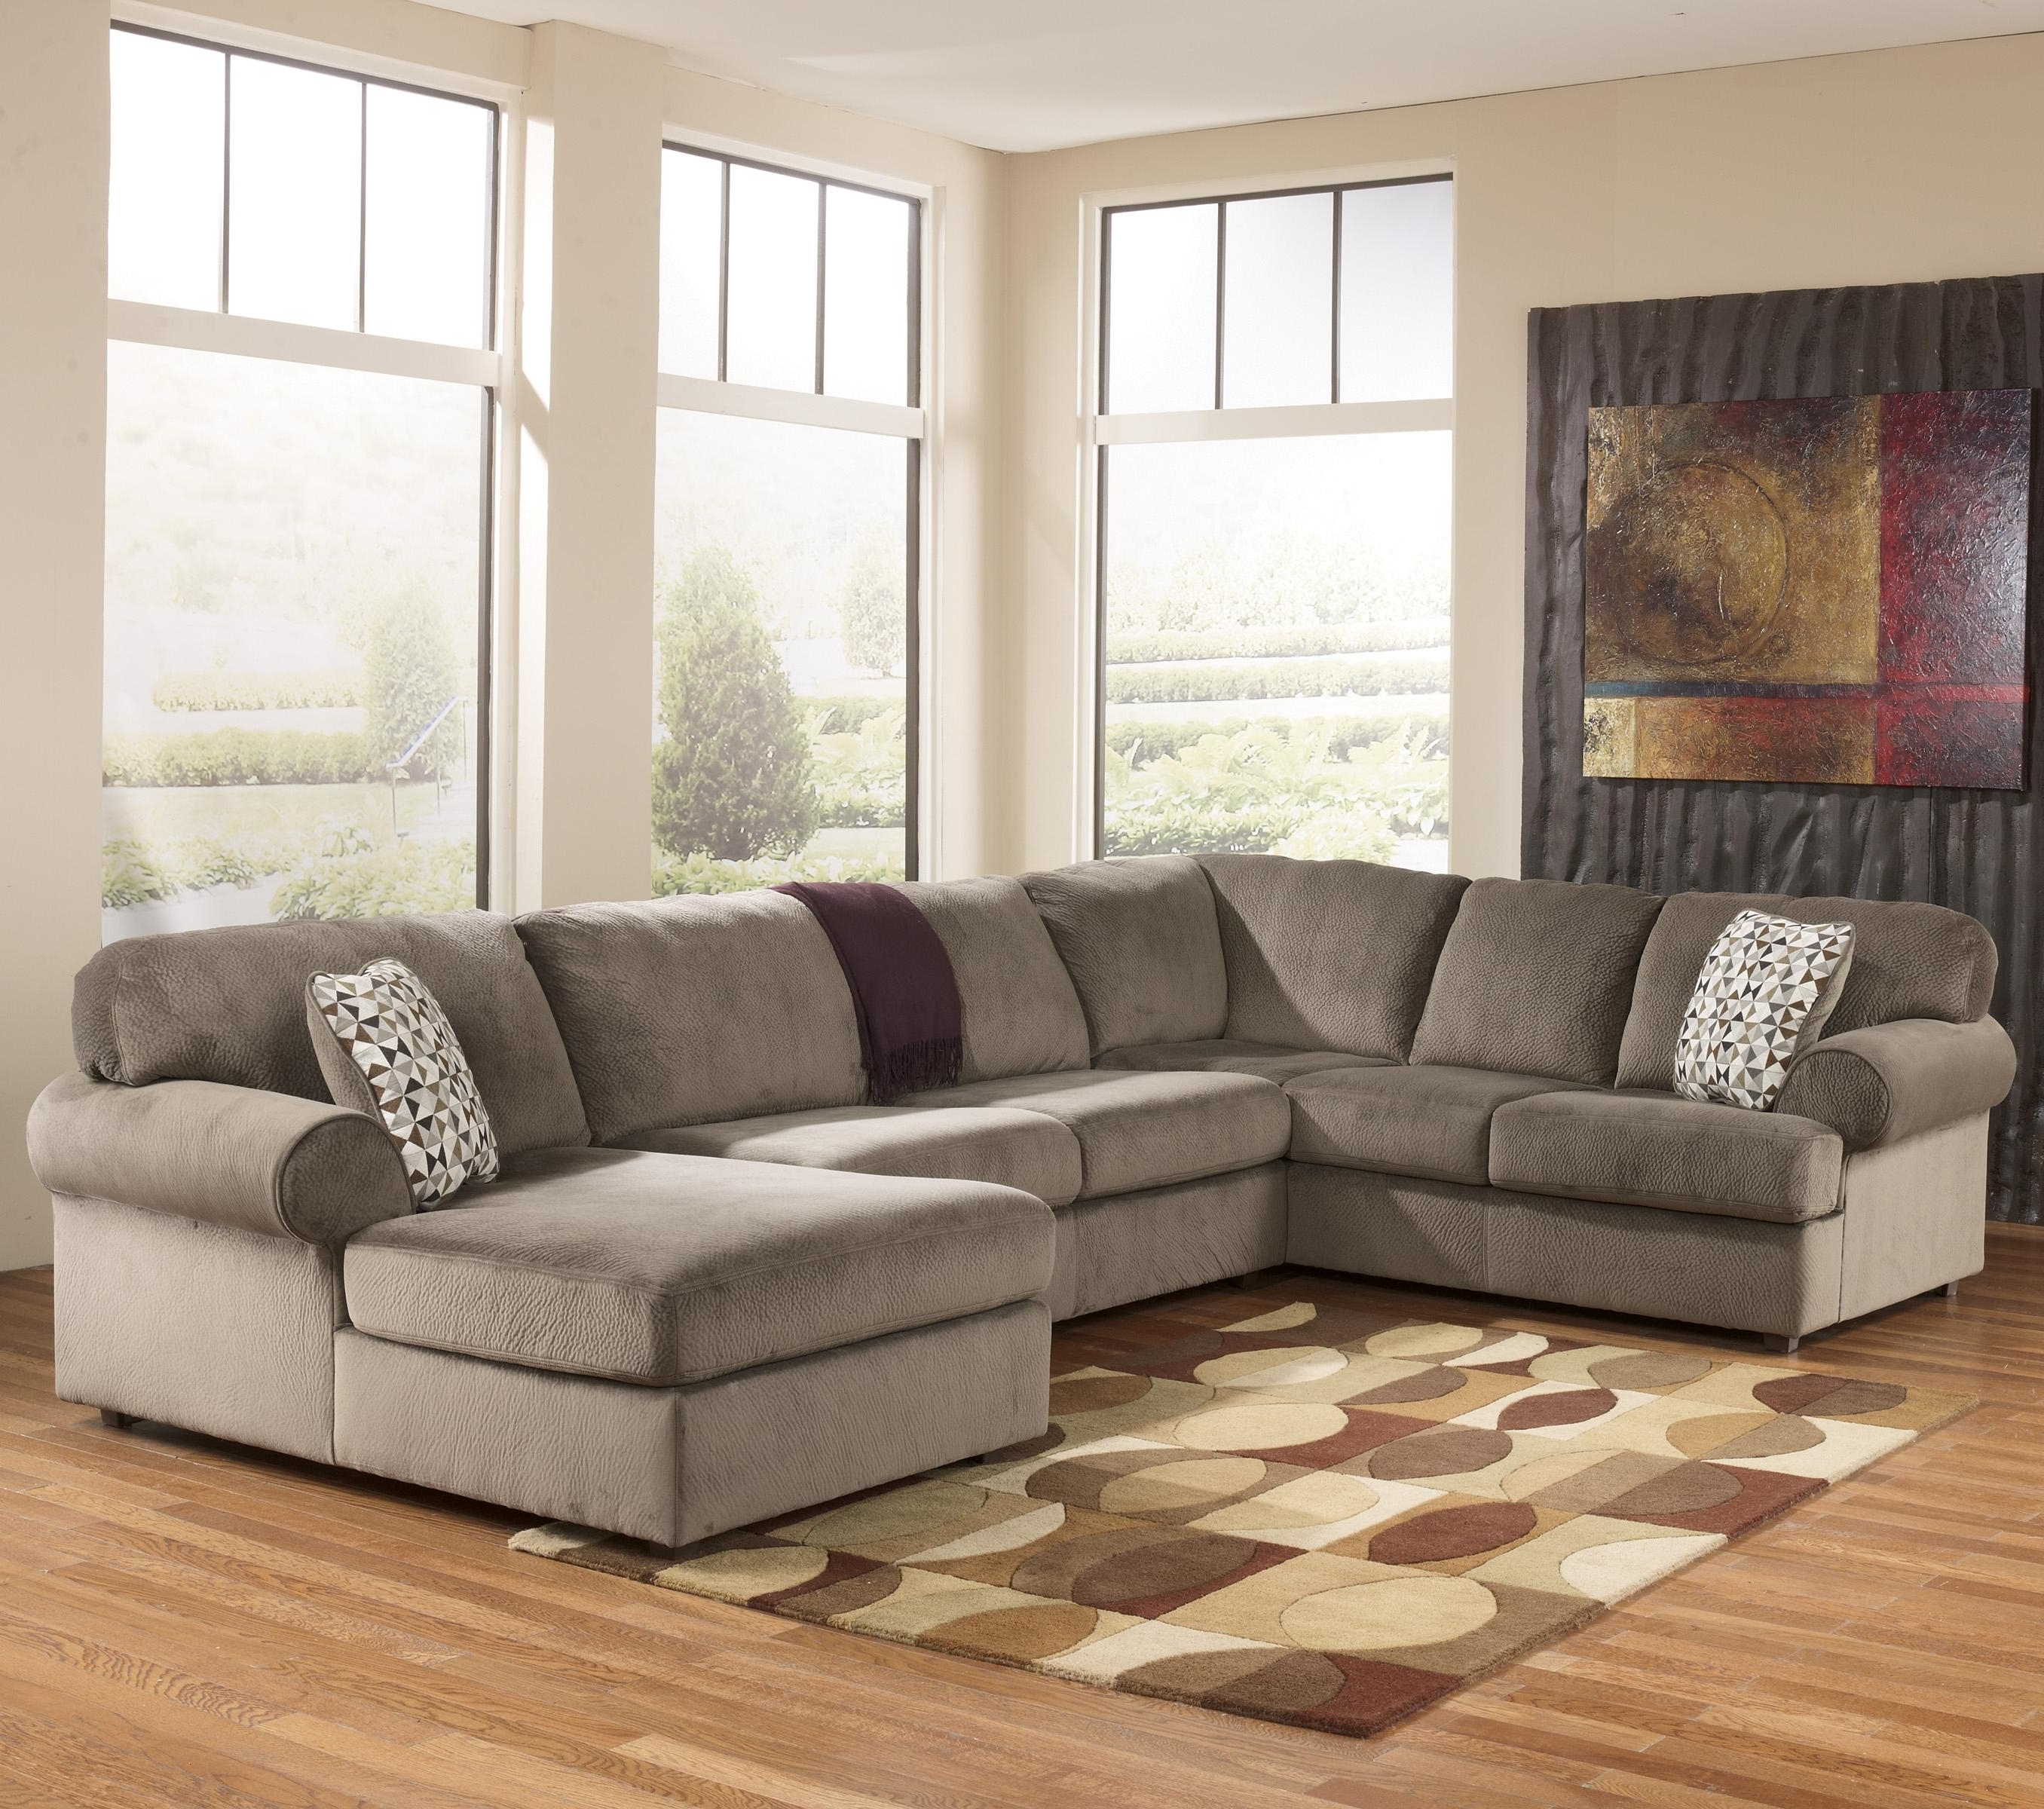 Signature Designashley Jessa Place – Dune Casual Sectional With Regard To 2017 Killeen Tx Sectional Sofas (View 14 of 15)